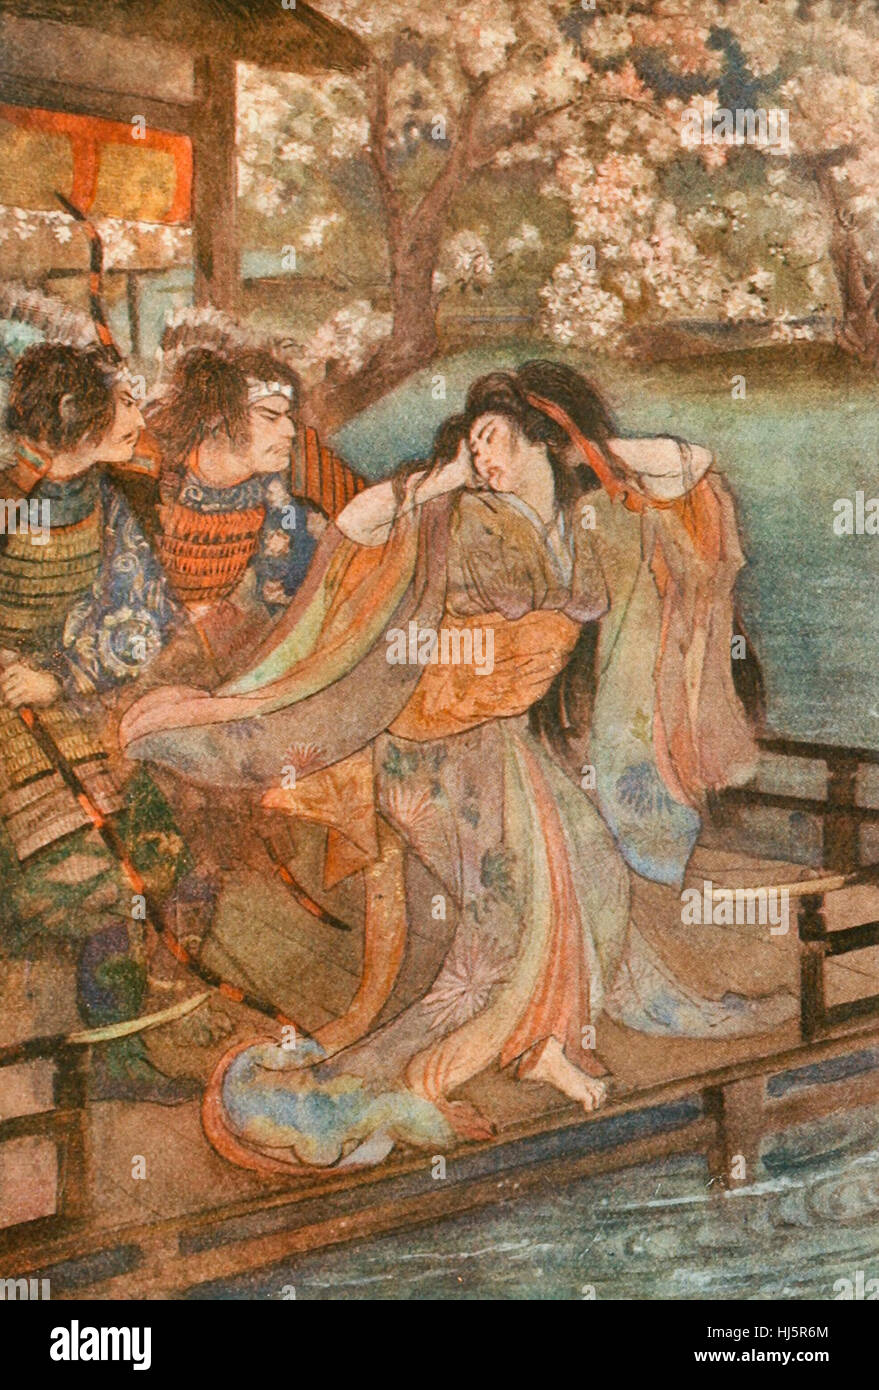 The Maiden of Unai, Japanese Folklore - Stock Image